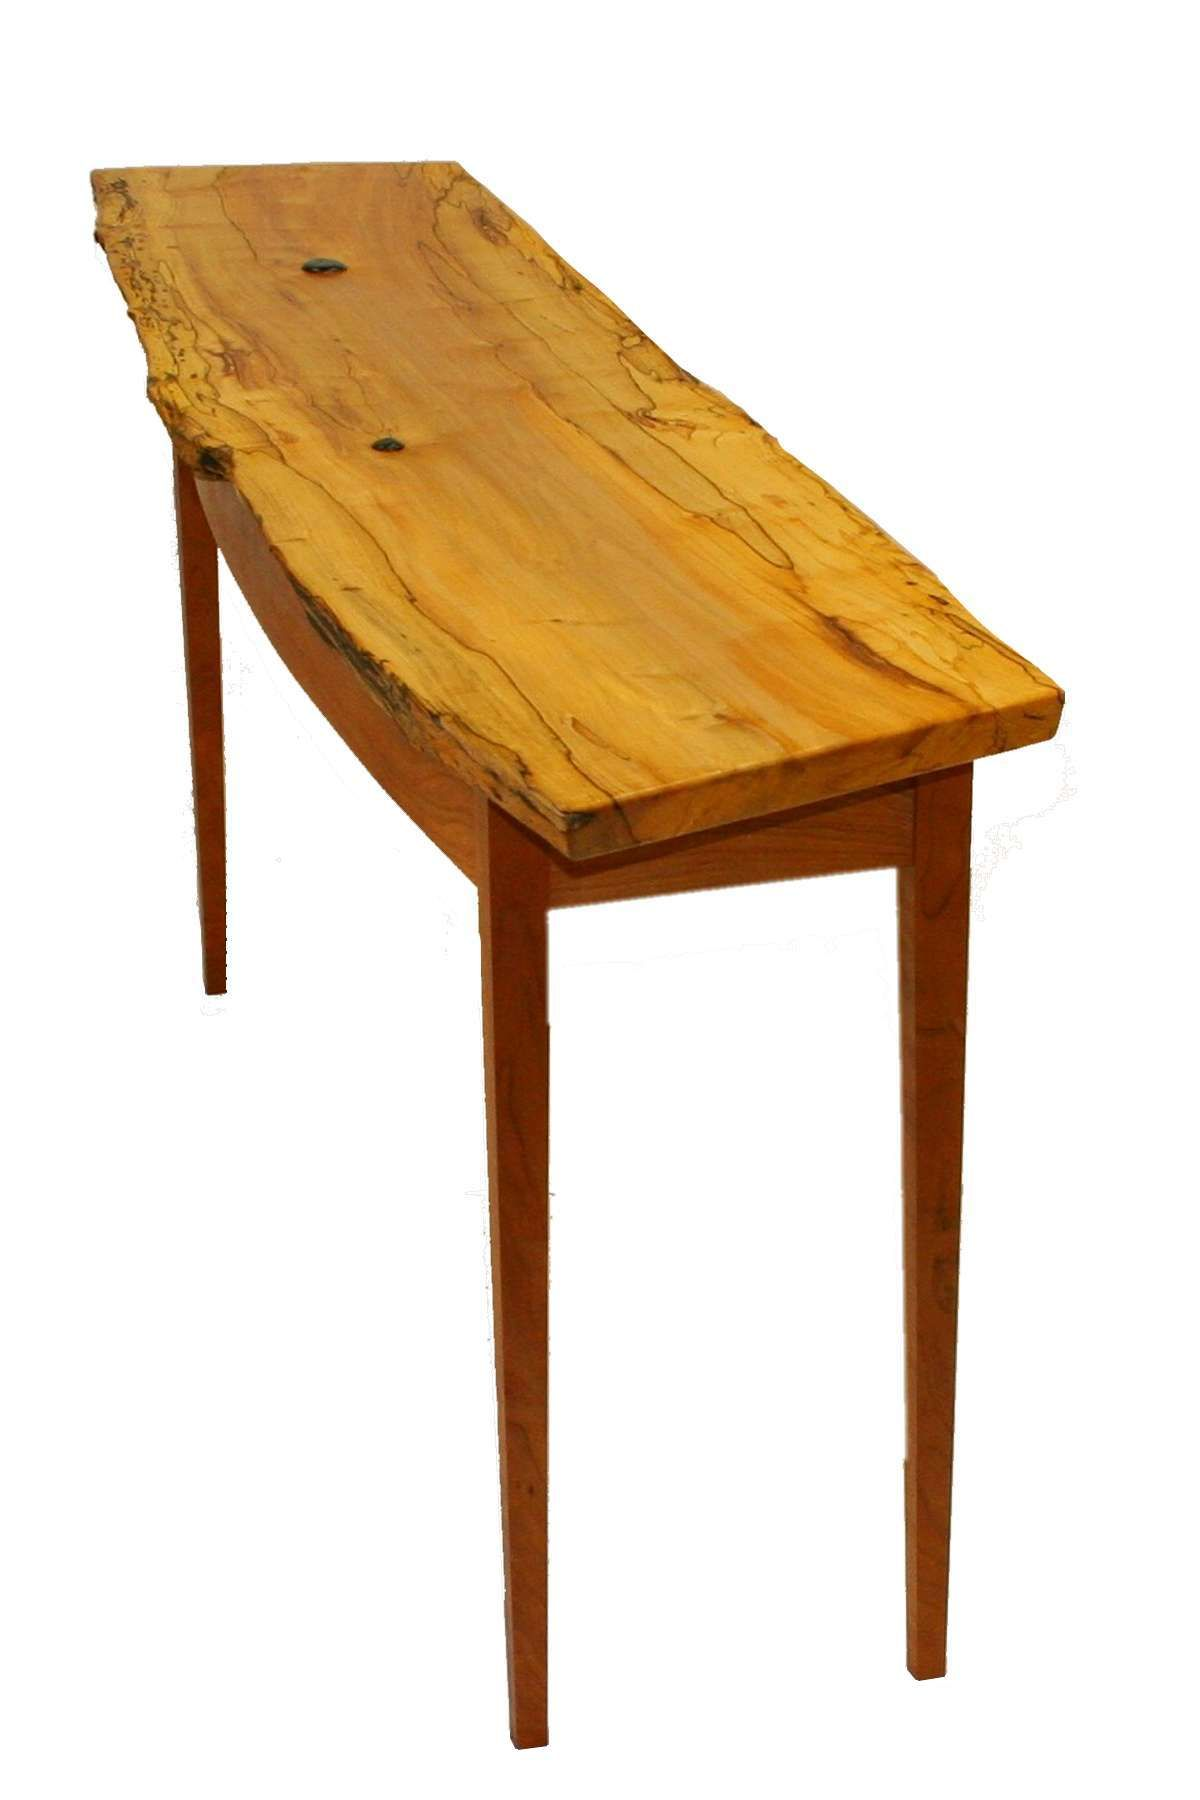 Martin C. Vendryes: Woodworking Life Cycle Shaker Hall Table Rescued Maple  Heartwood With Live